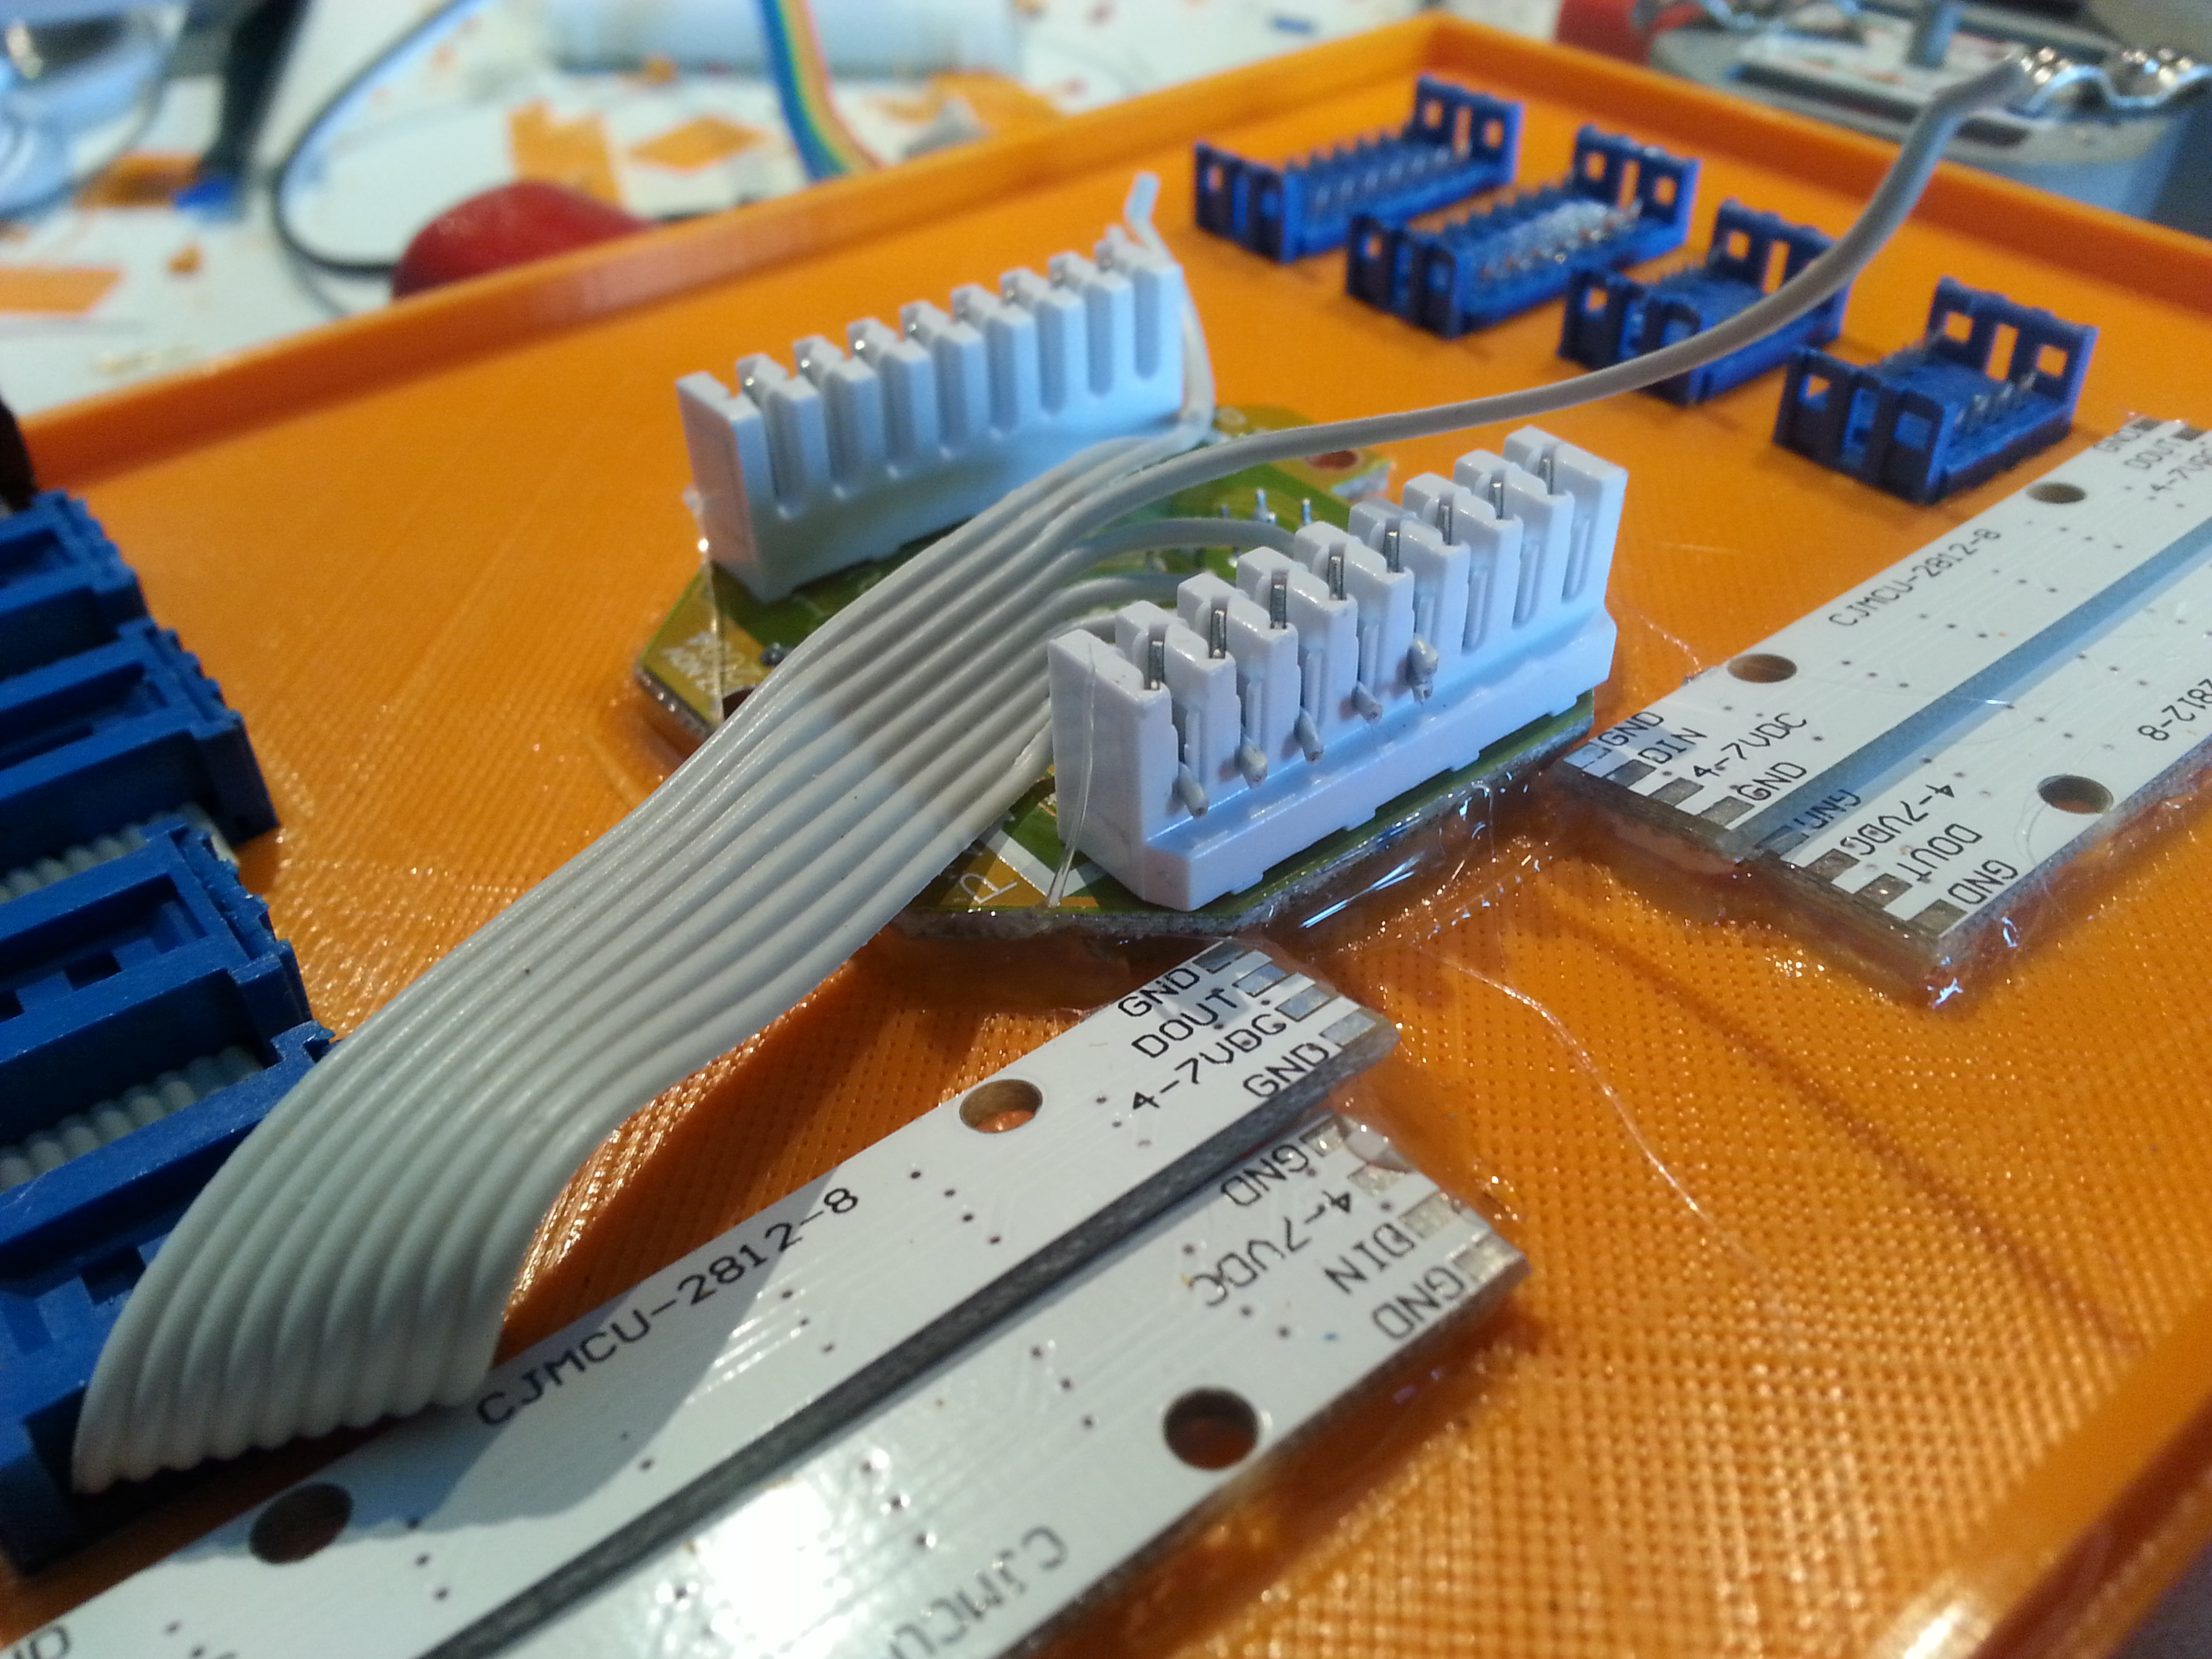 The Orangebox Timdows Rj45 Wiring Diagram And Pin Counting Connecting Ribbon Cable With A Punch Tool To Board